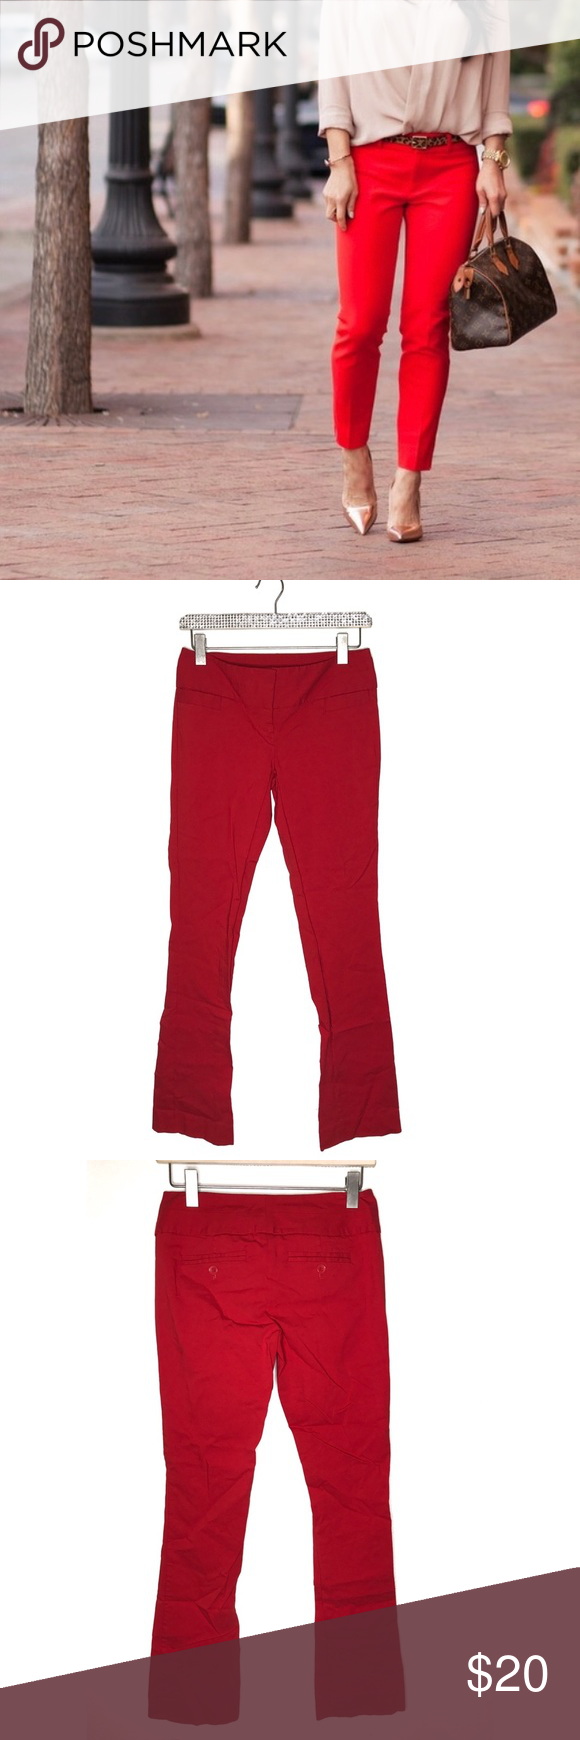 The Limited Exact Stretch Red Pants Size 0 The Limited